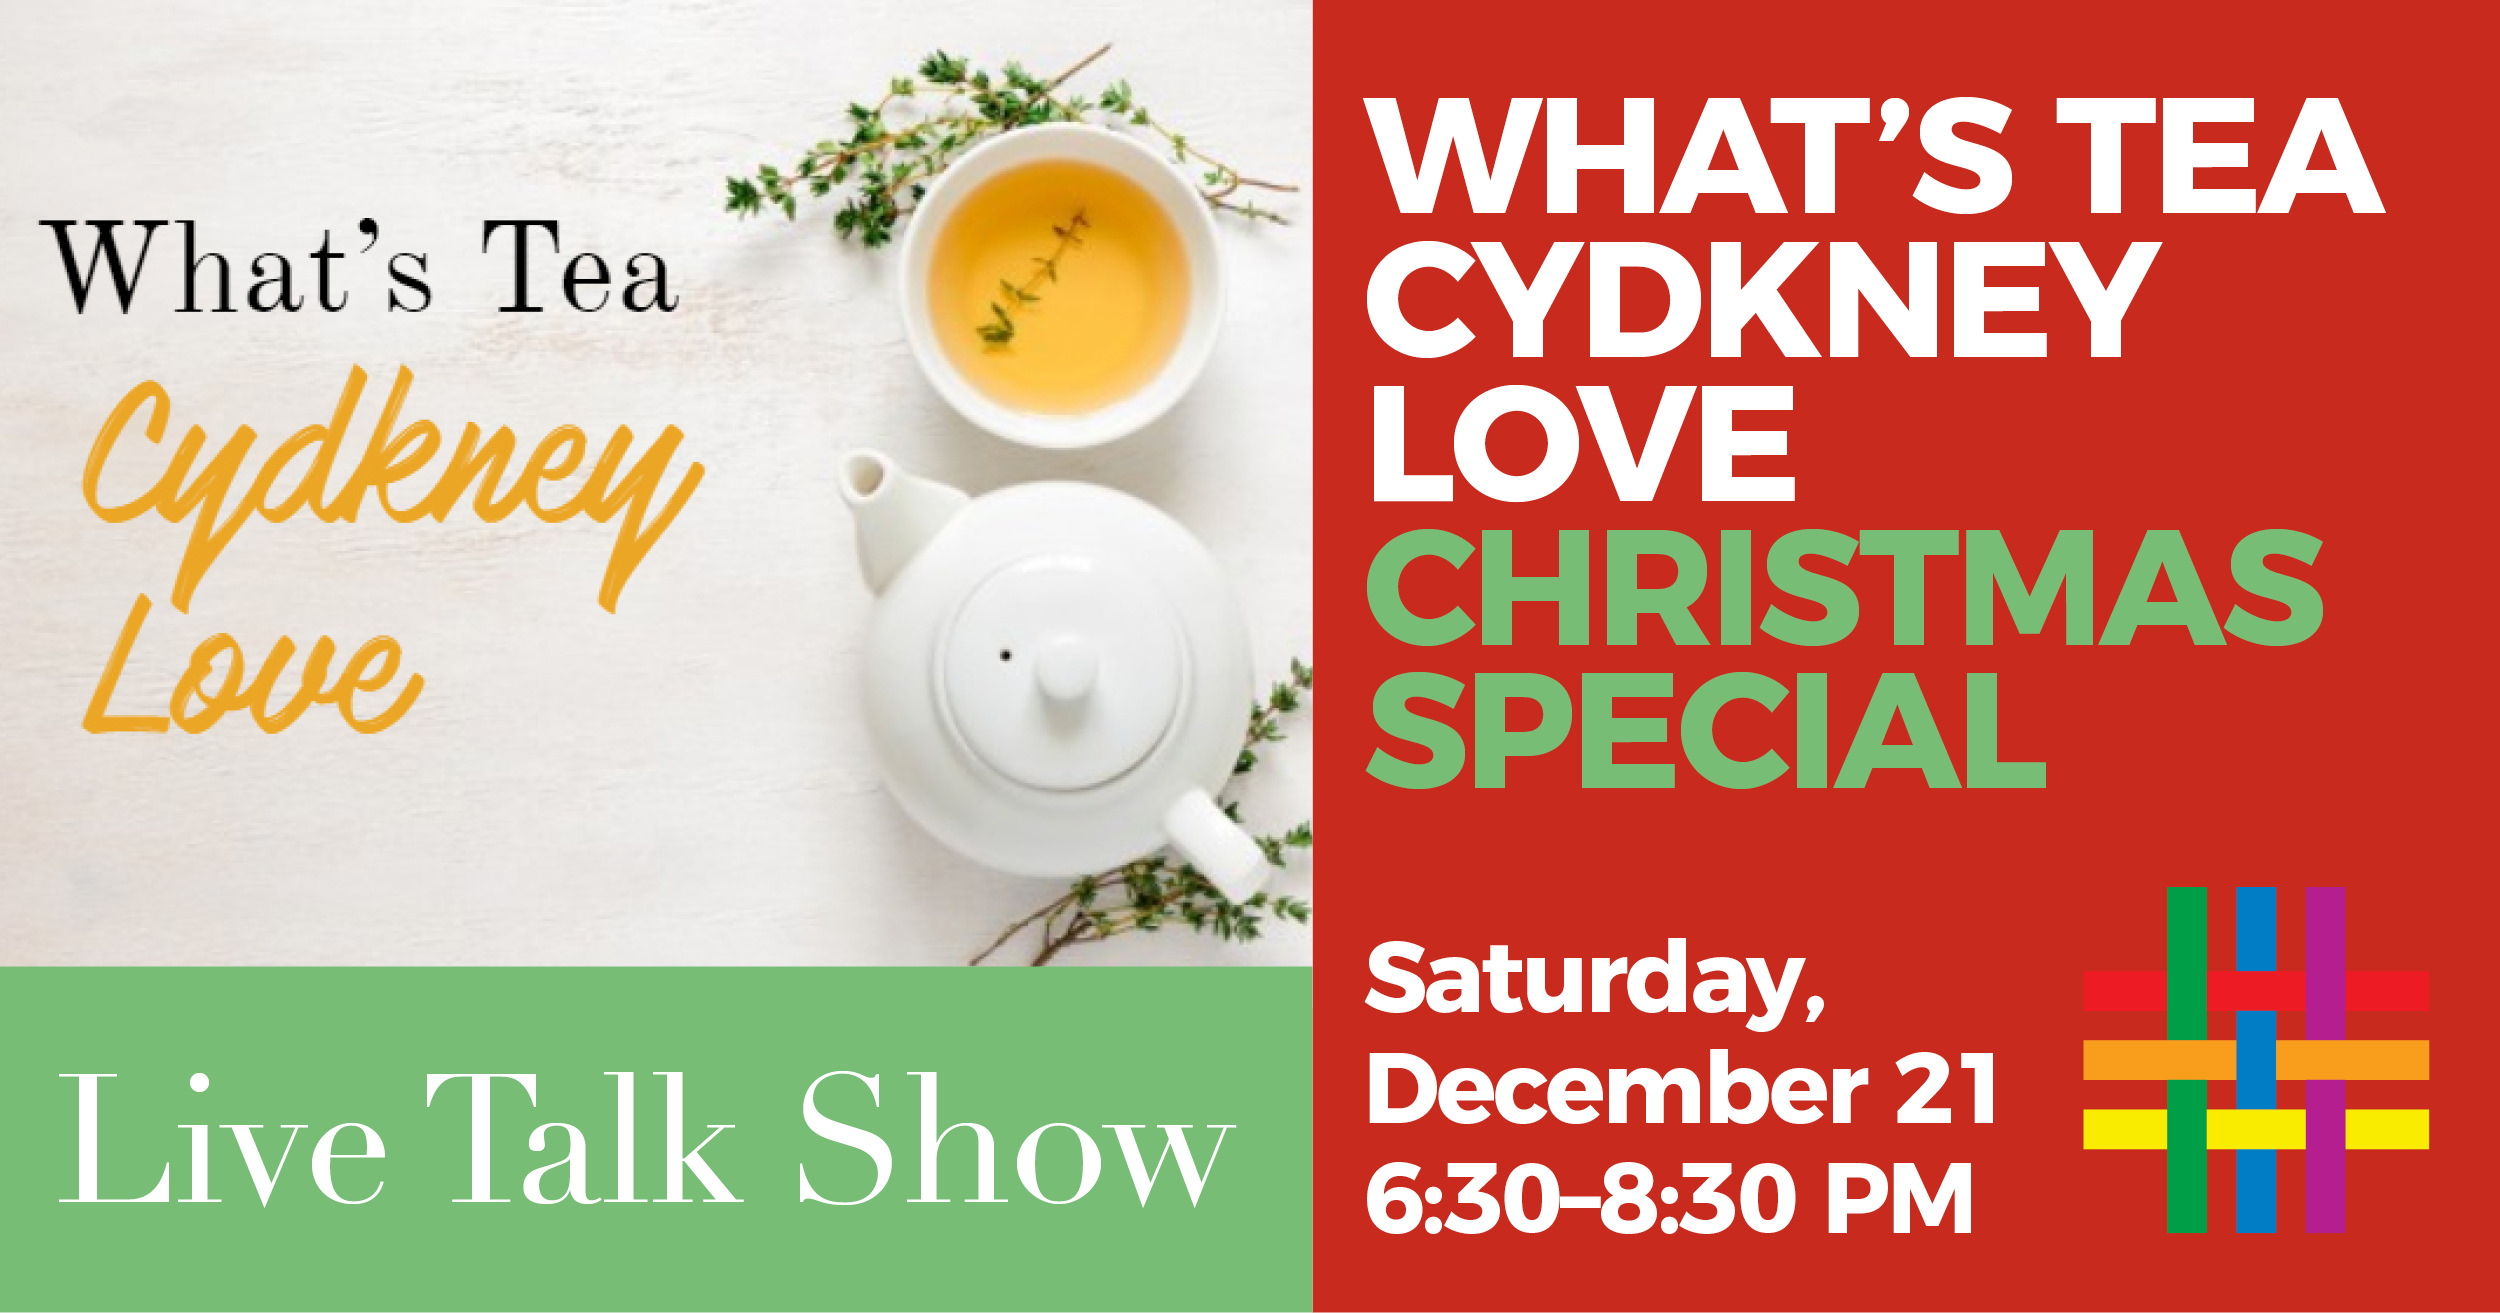 What's Tea Cydkney Love Xmas Special at Brooklyn Community Pride Center